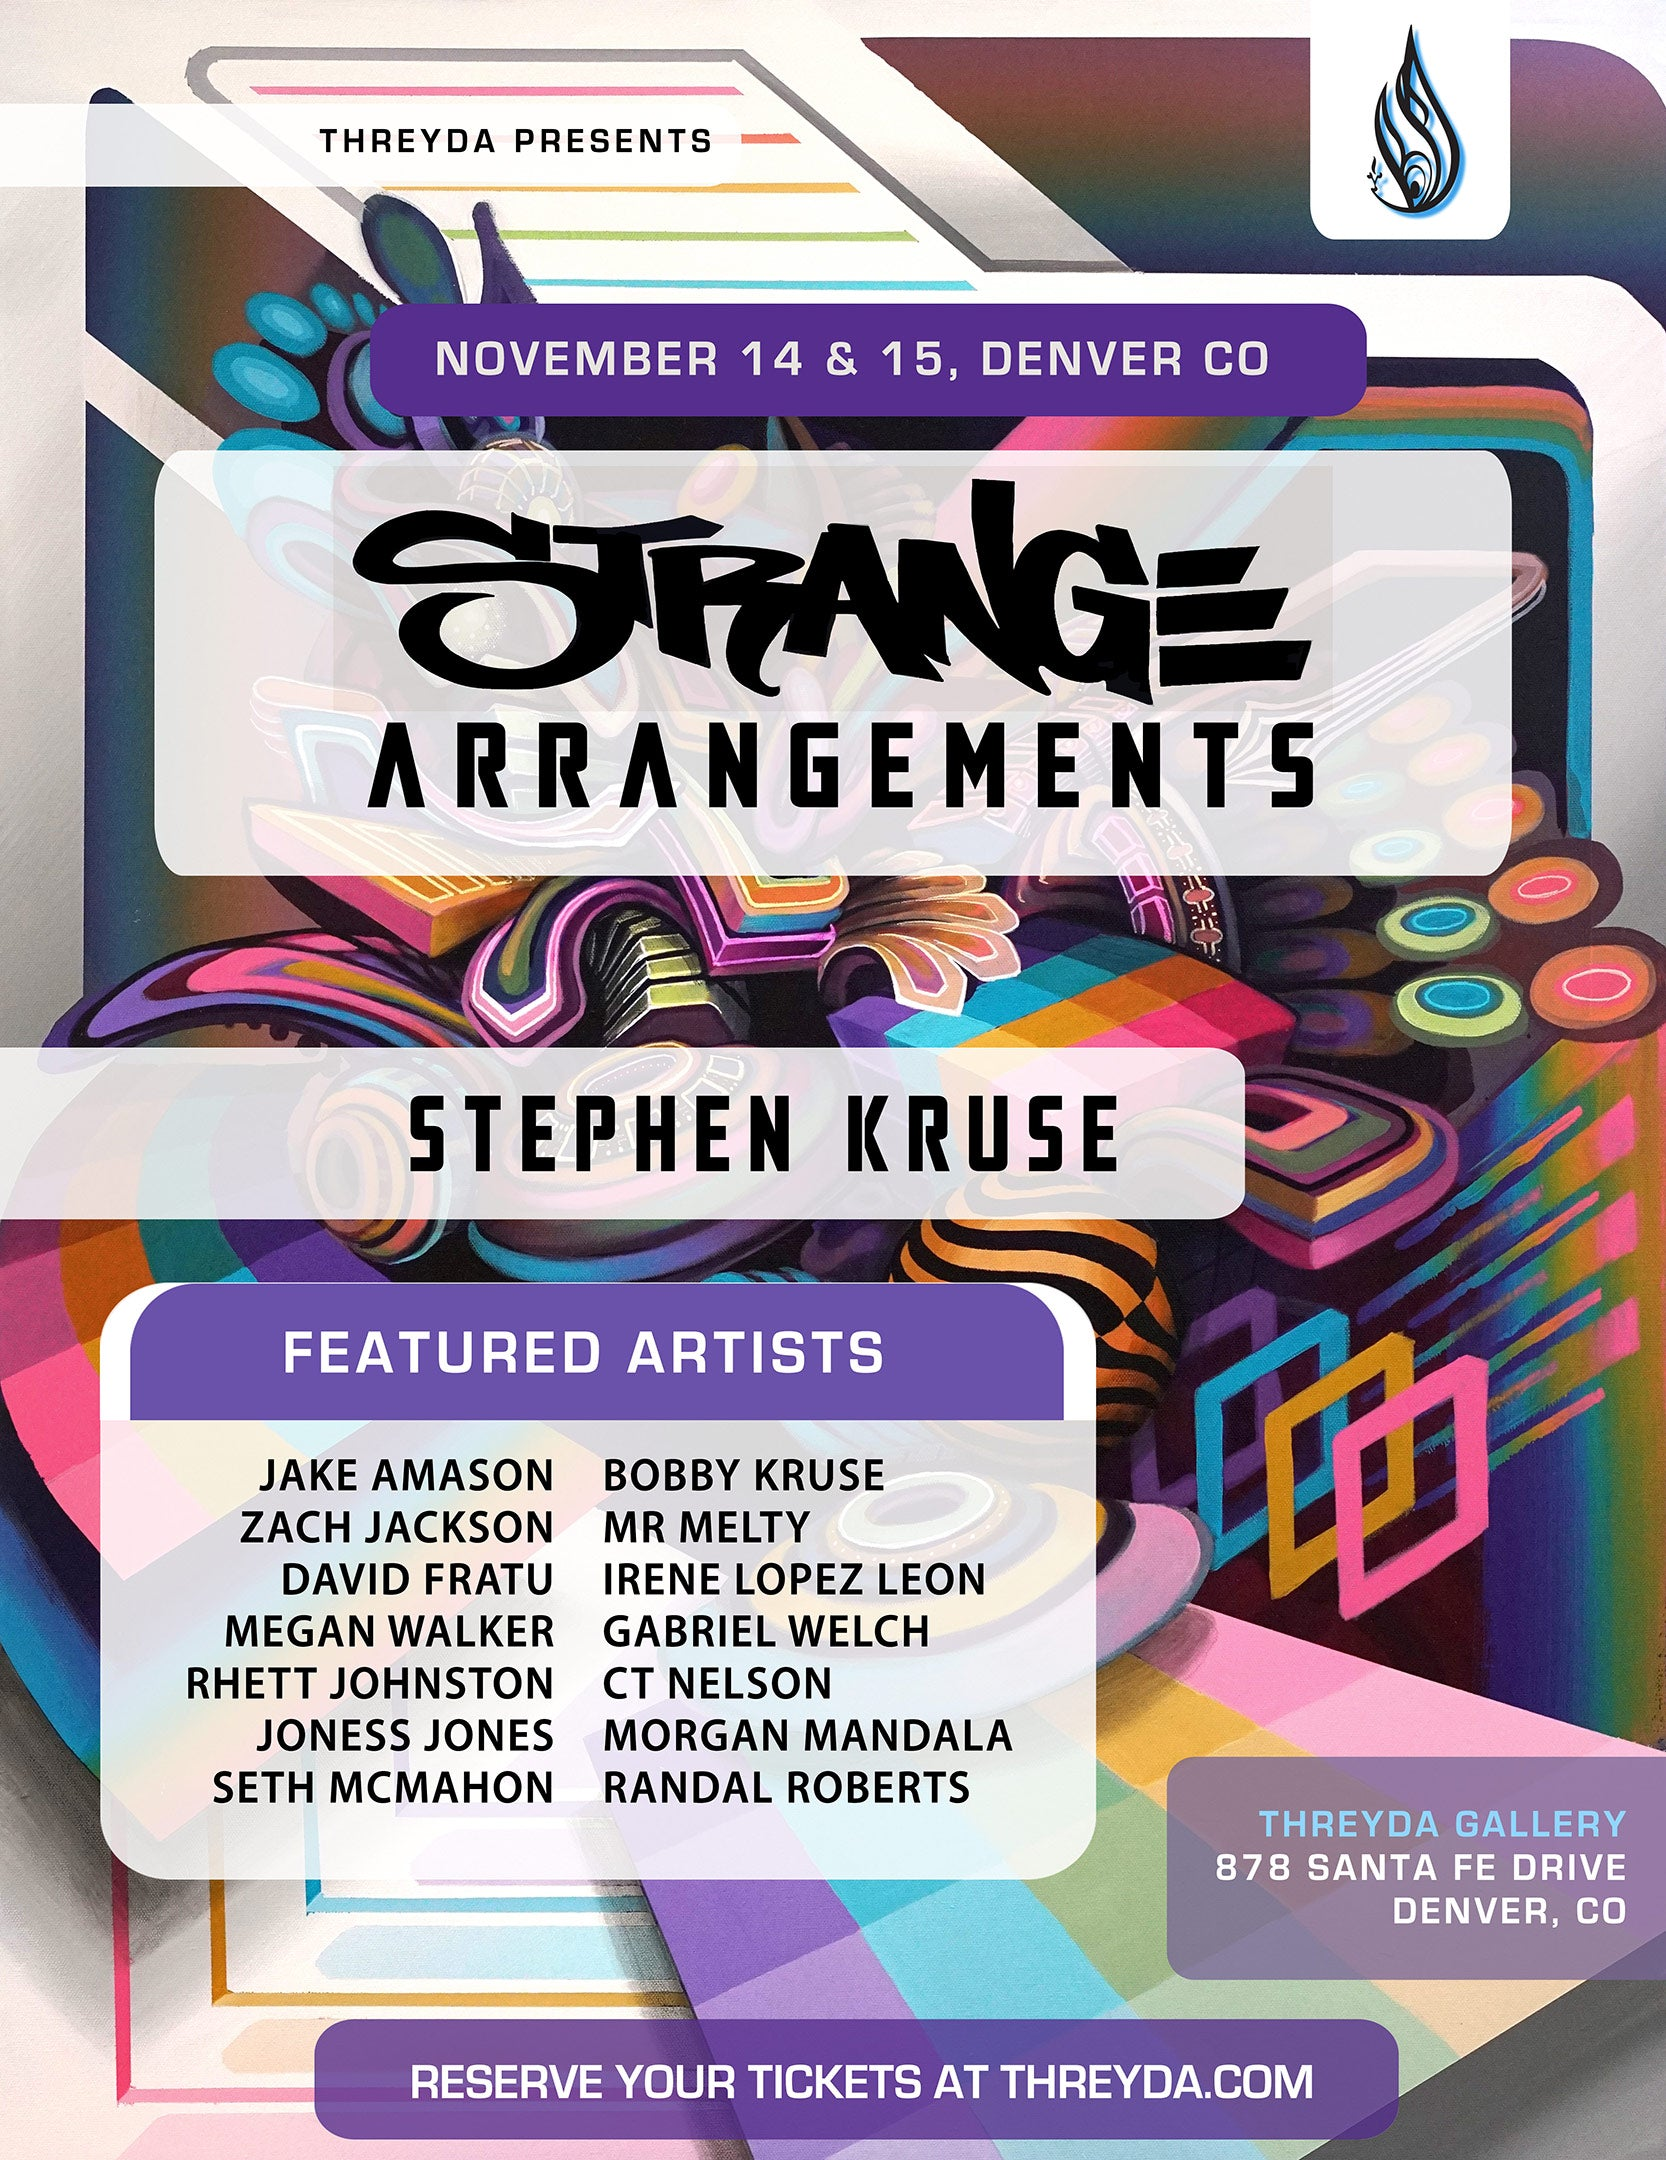 Strange Arrangements by Stephen Kruse - November 14th and 15th